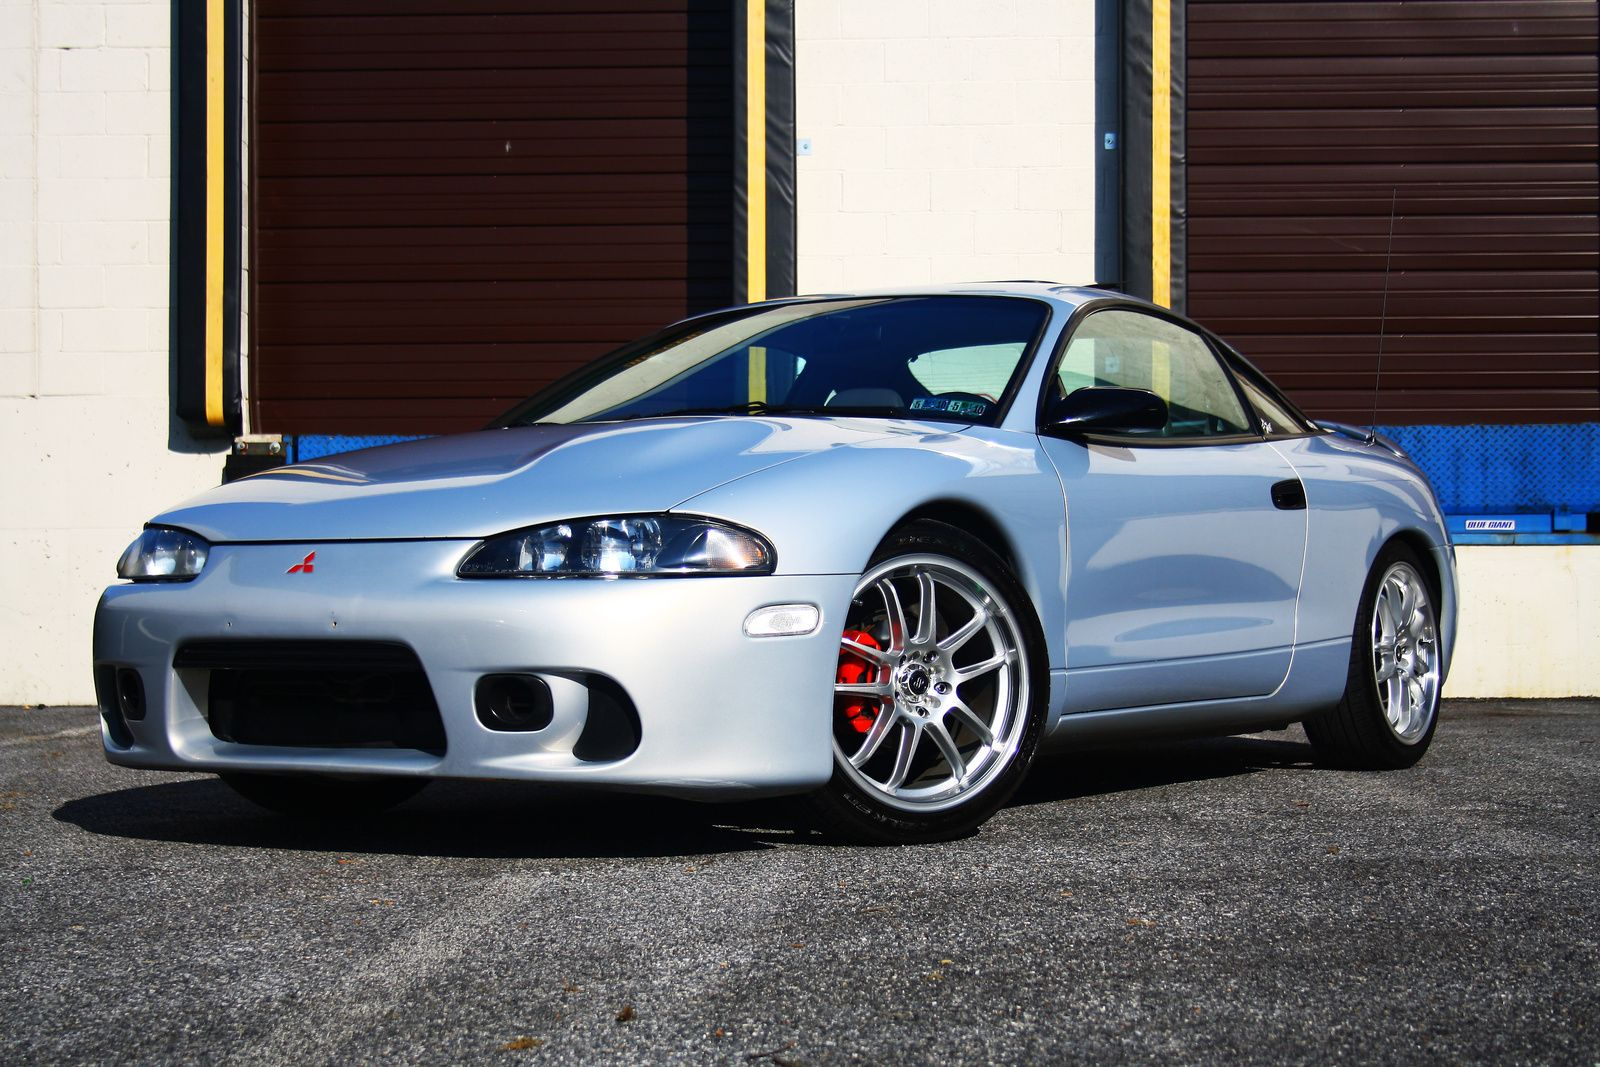 1999 Mitsubishi Eclipse Gsx Wallpaper